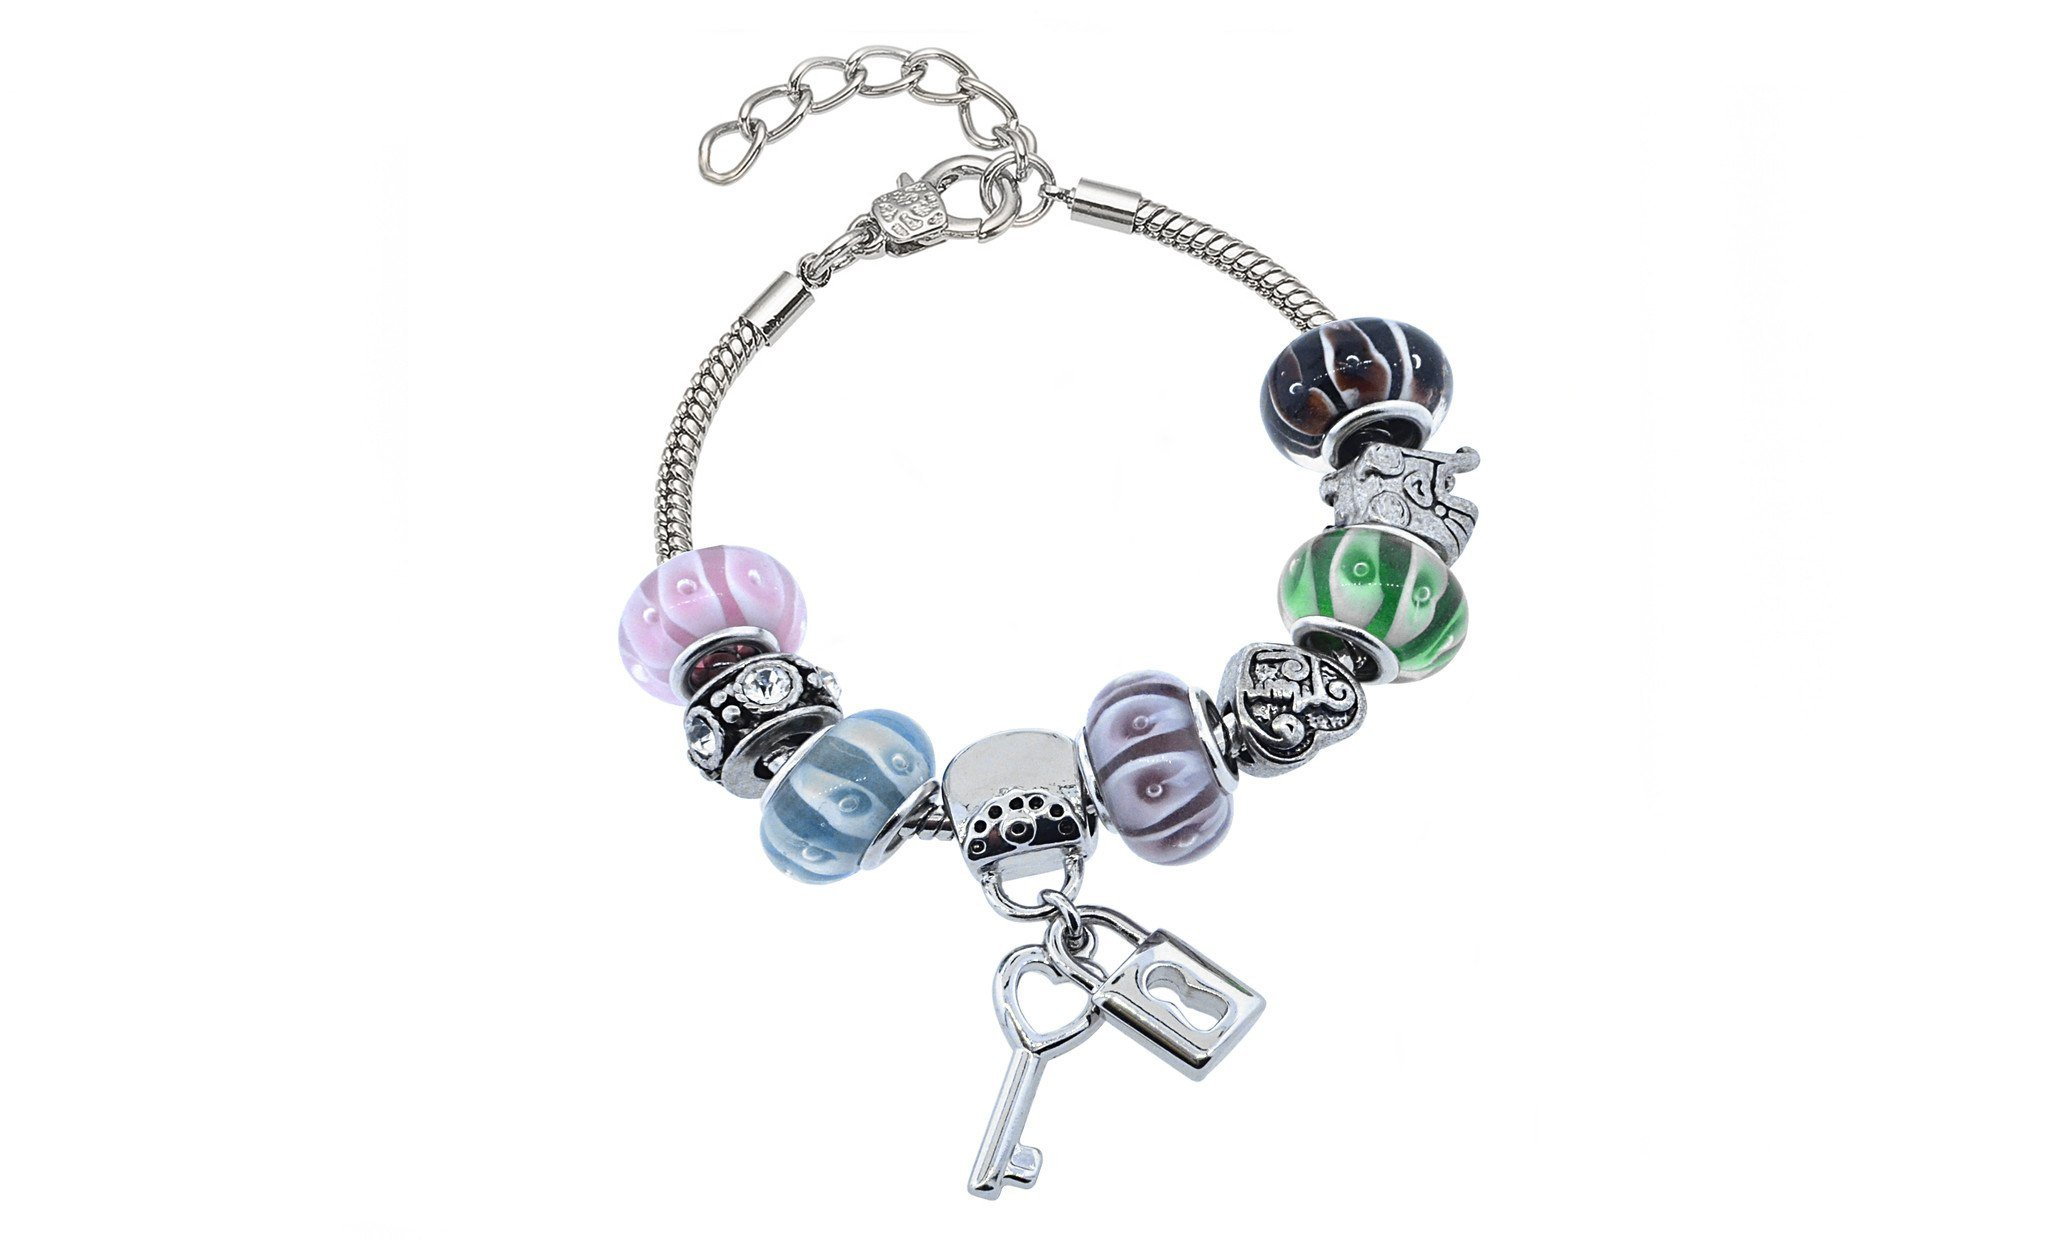 lock and key charm bracelets for women